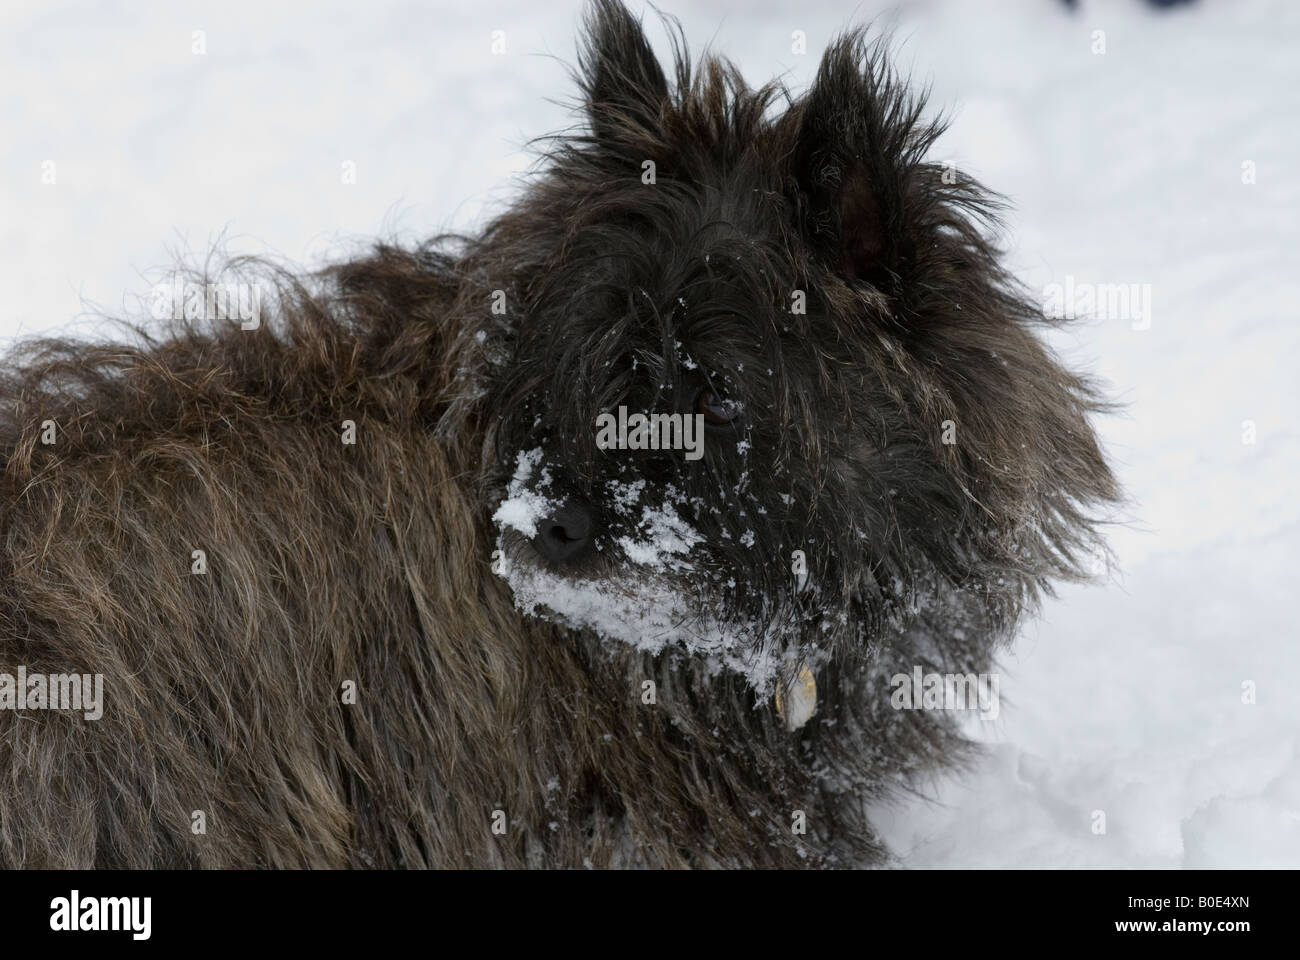 Red brindle Cairn terrier dog in snow with snowy face - Stock Image